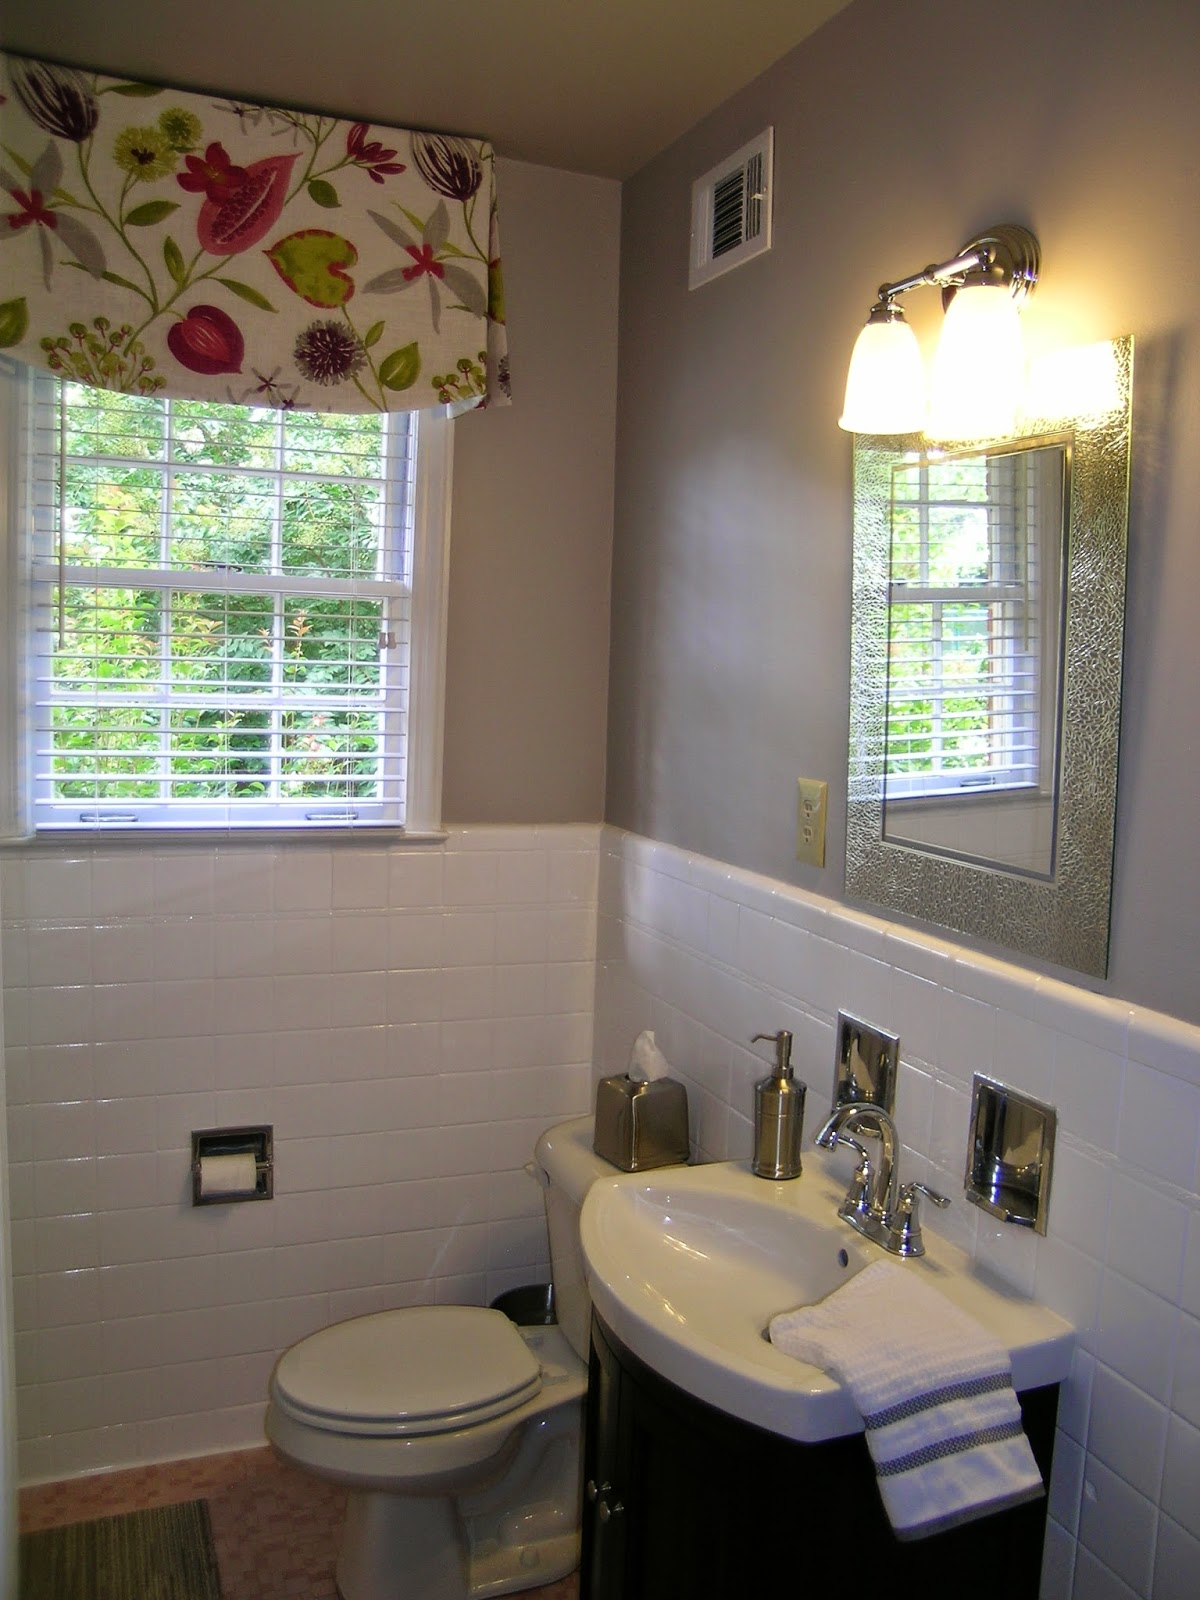 Eanes Foster Design Bathroom Redos On A Budget - Bathroom redos on a budget